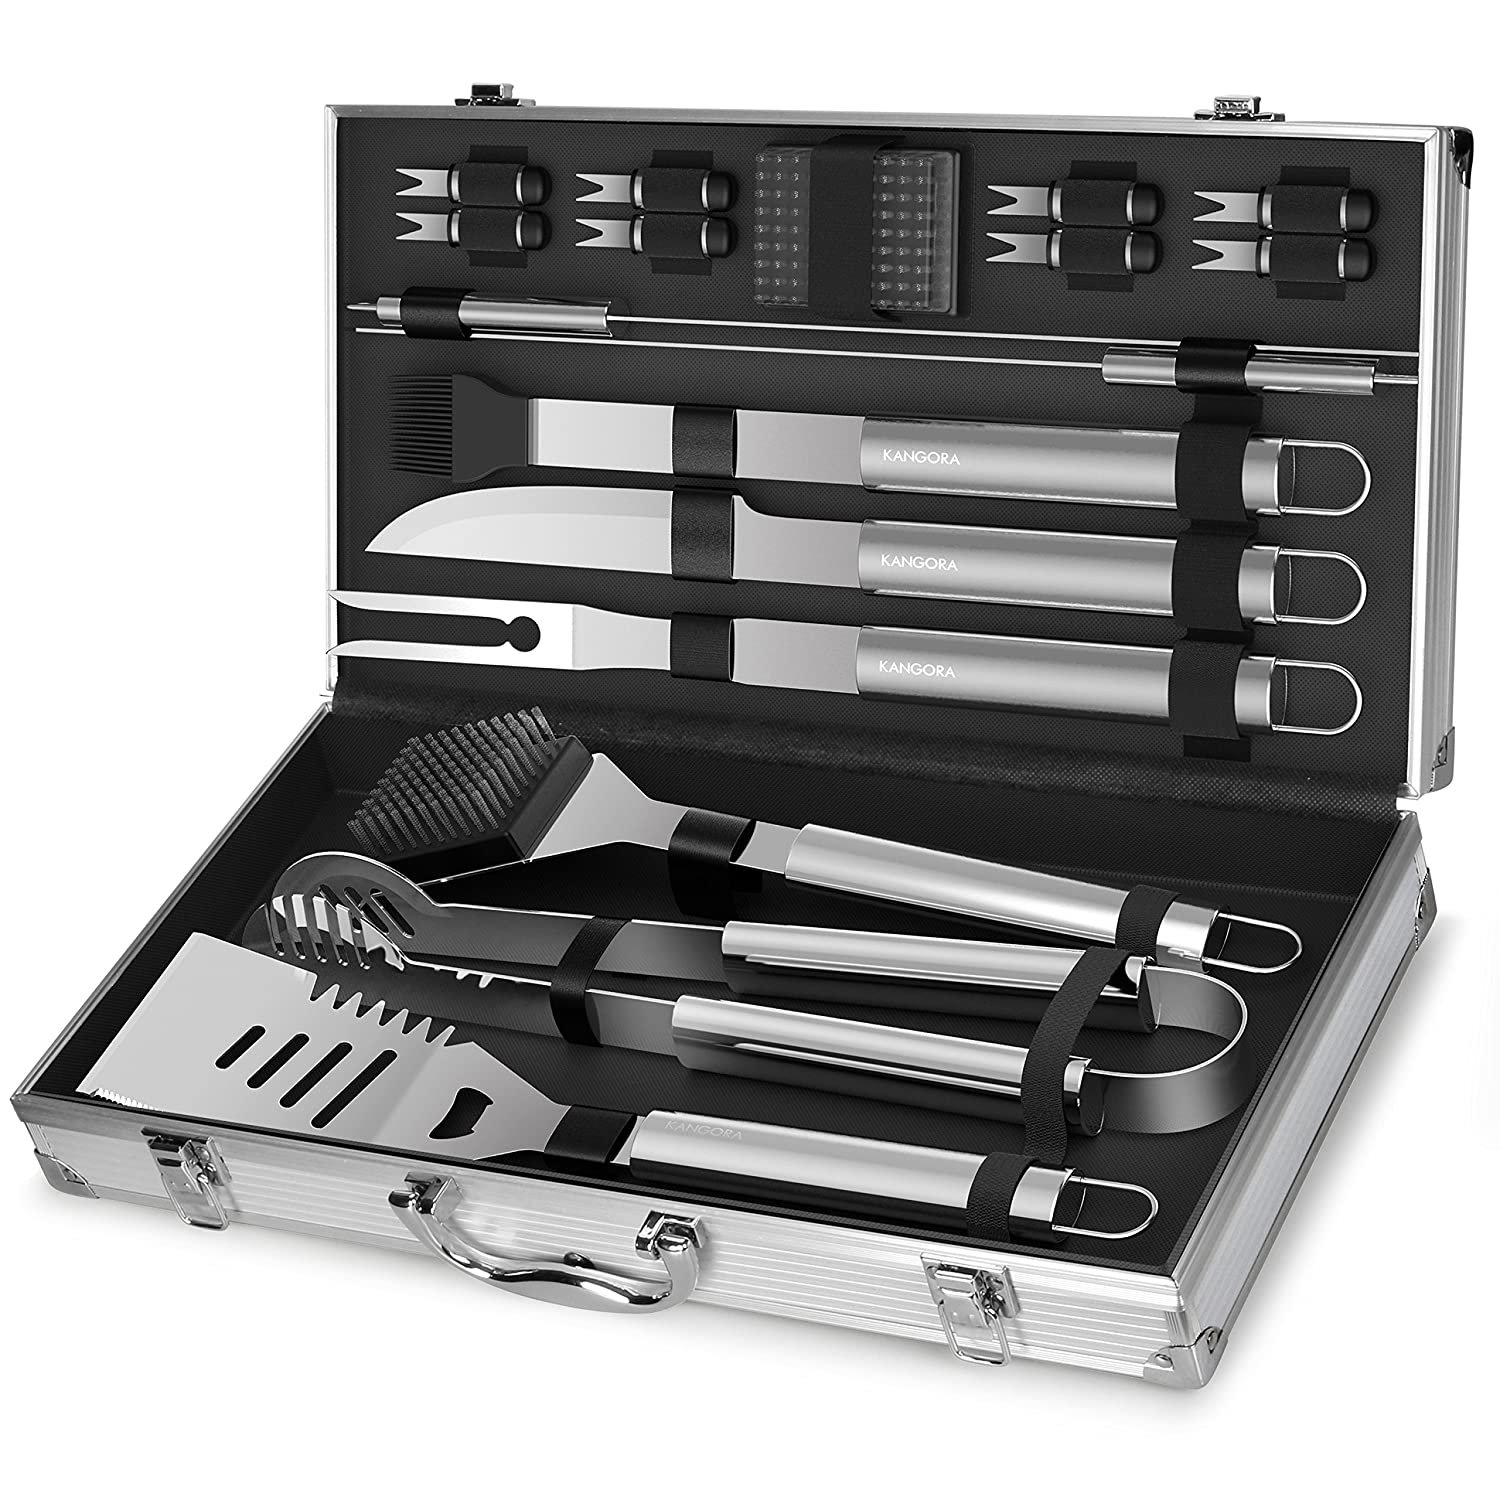 Professional BBQ Grill Utensils w/Storage Case (18-Piece Set)